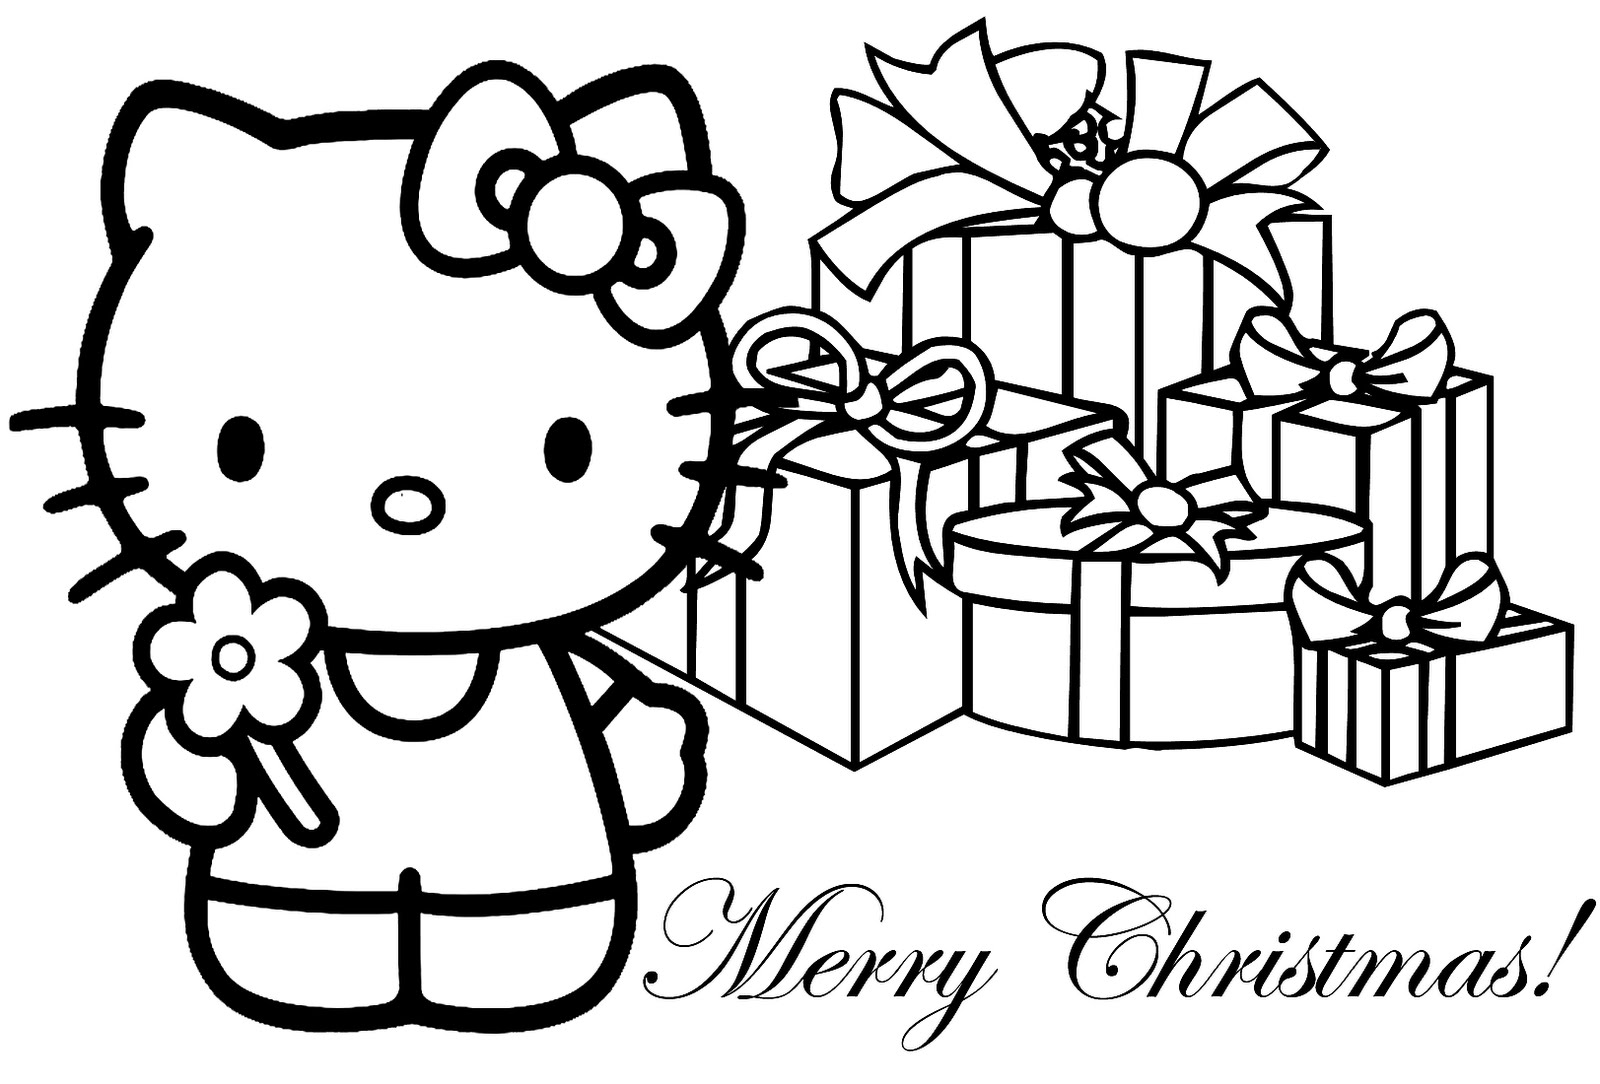 christmal coloring pages - photo#17